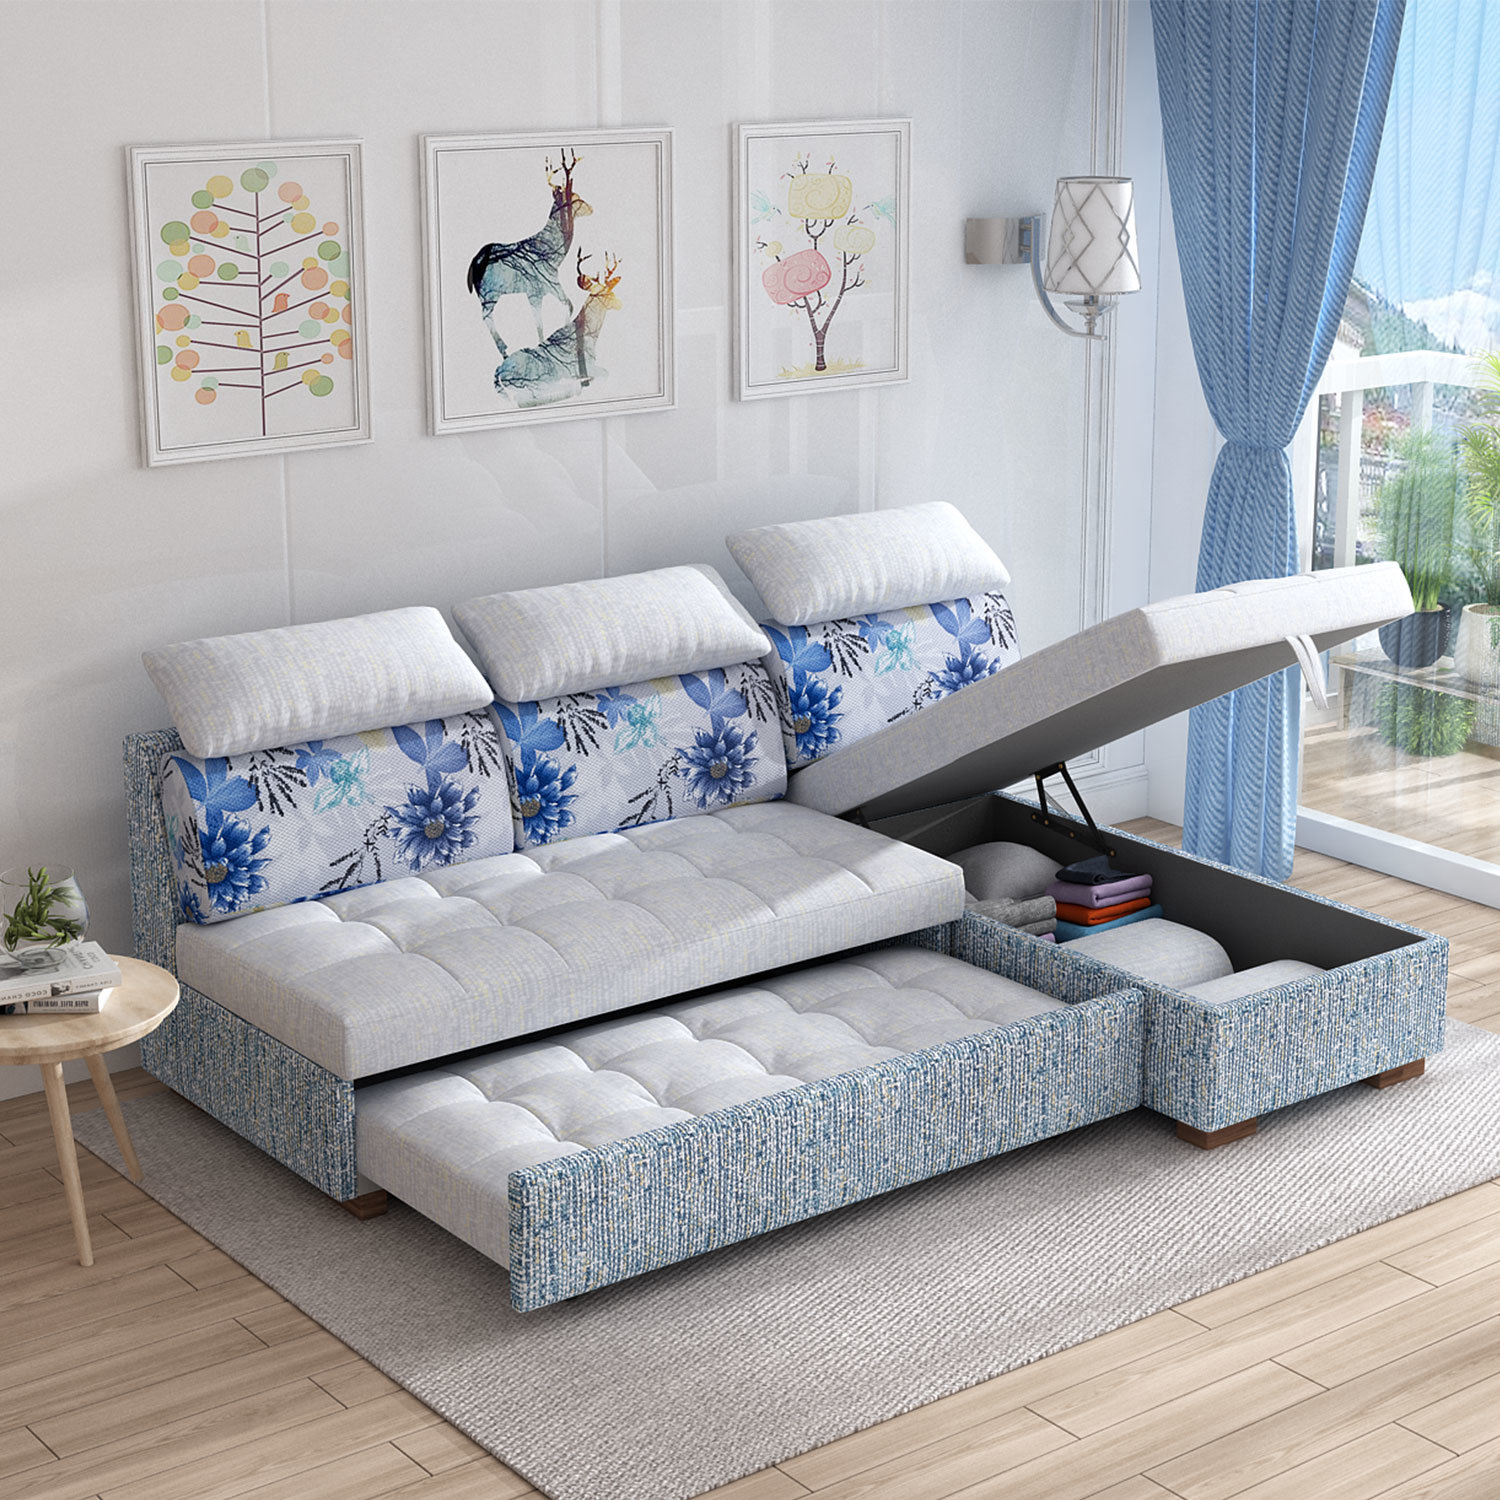 China Mini Fabric Sectional Couch, Coner L Shape Sofa Cum Bed With Storage Photos & Pictures - Made-in-china.com